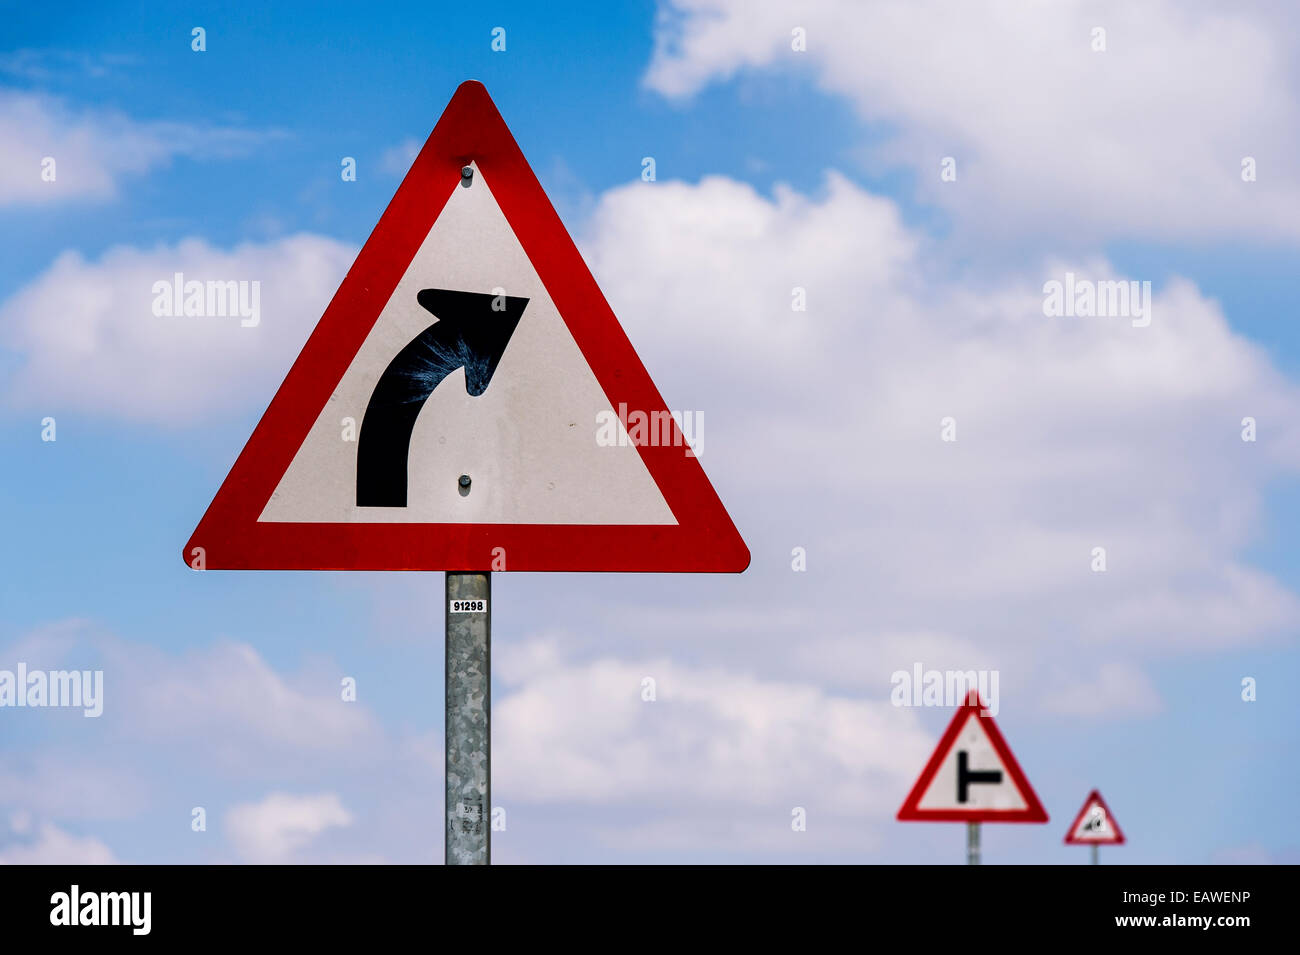 A series of signs warn of impending driving hazards and dangers. - Stock Image